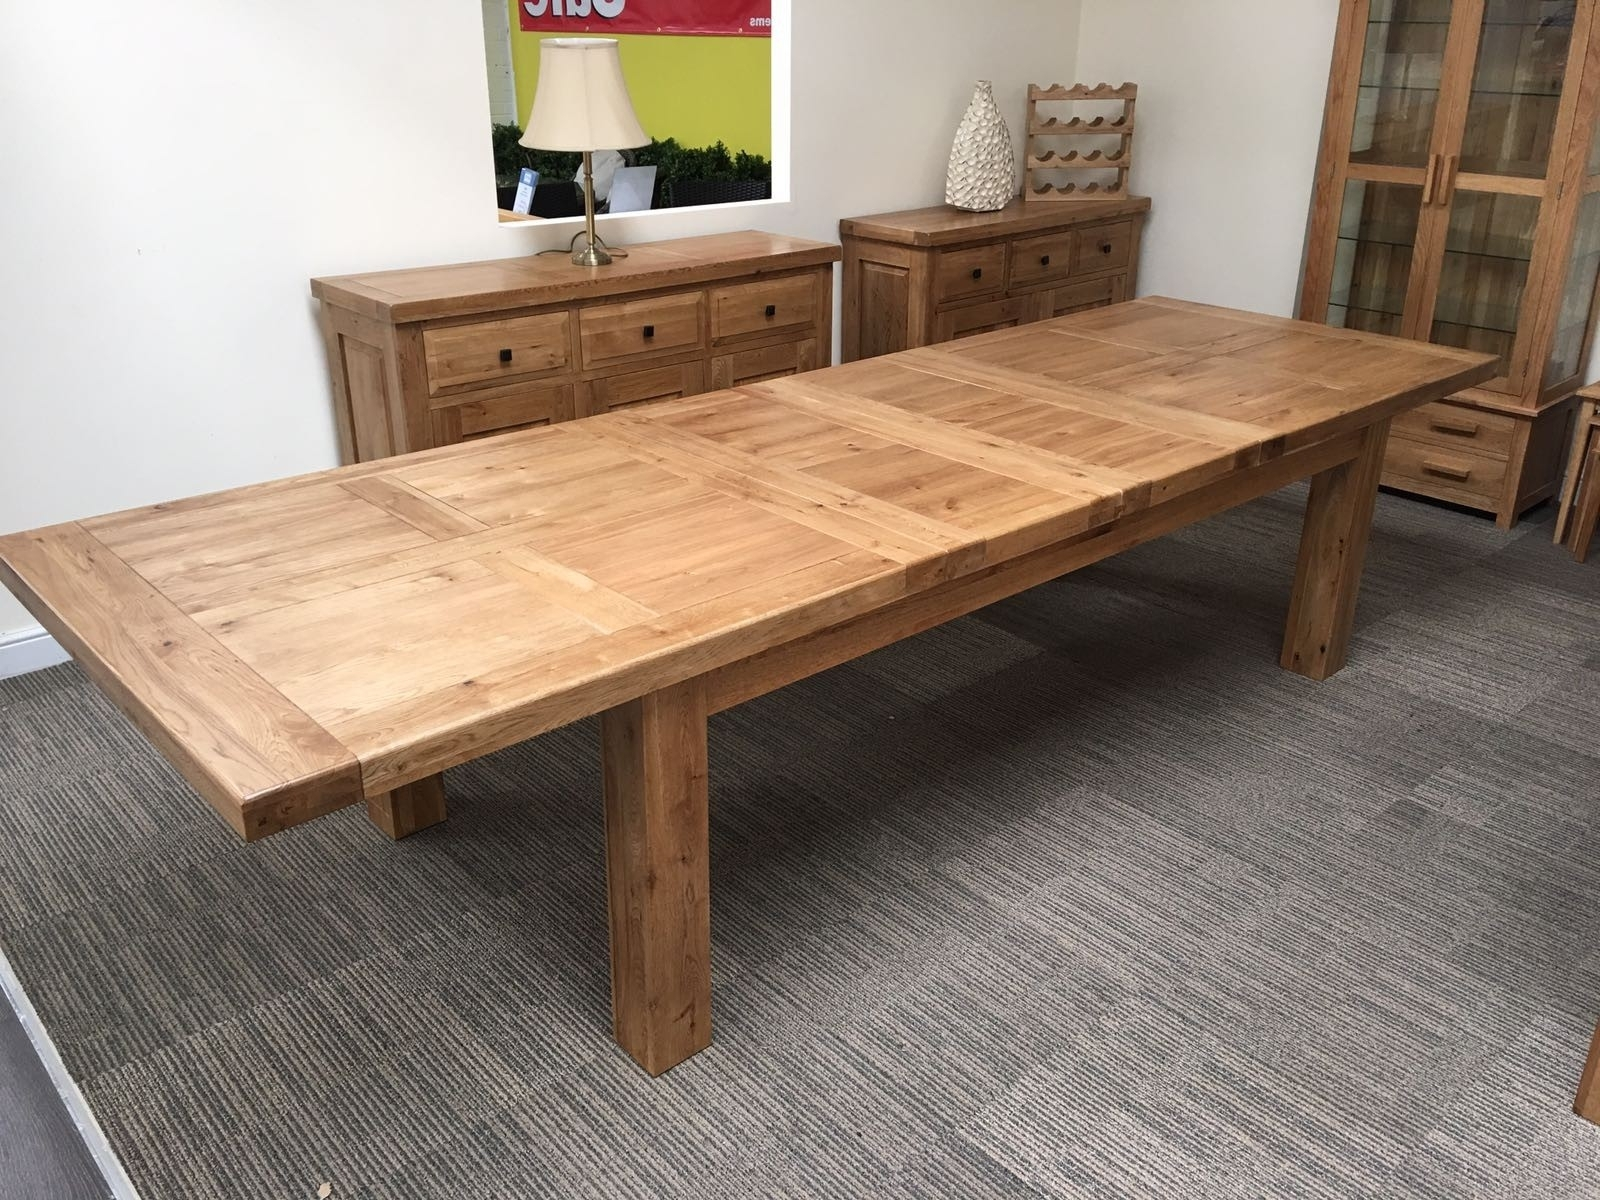 2018 The Making Of The Solid Wood Dining Table – Home Decor Ideas Throughout Extending Oak Dining Tables (View 2 of 25)